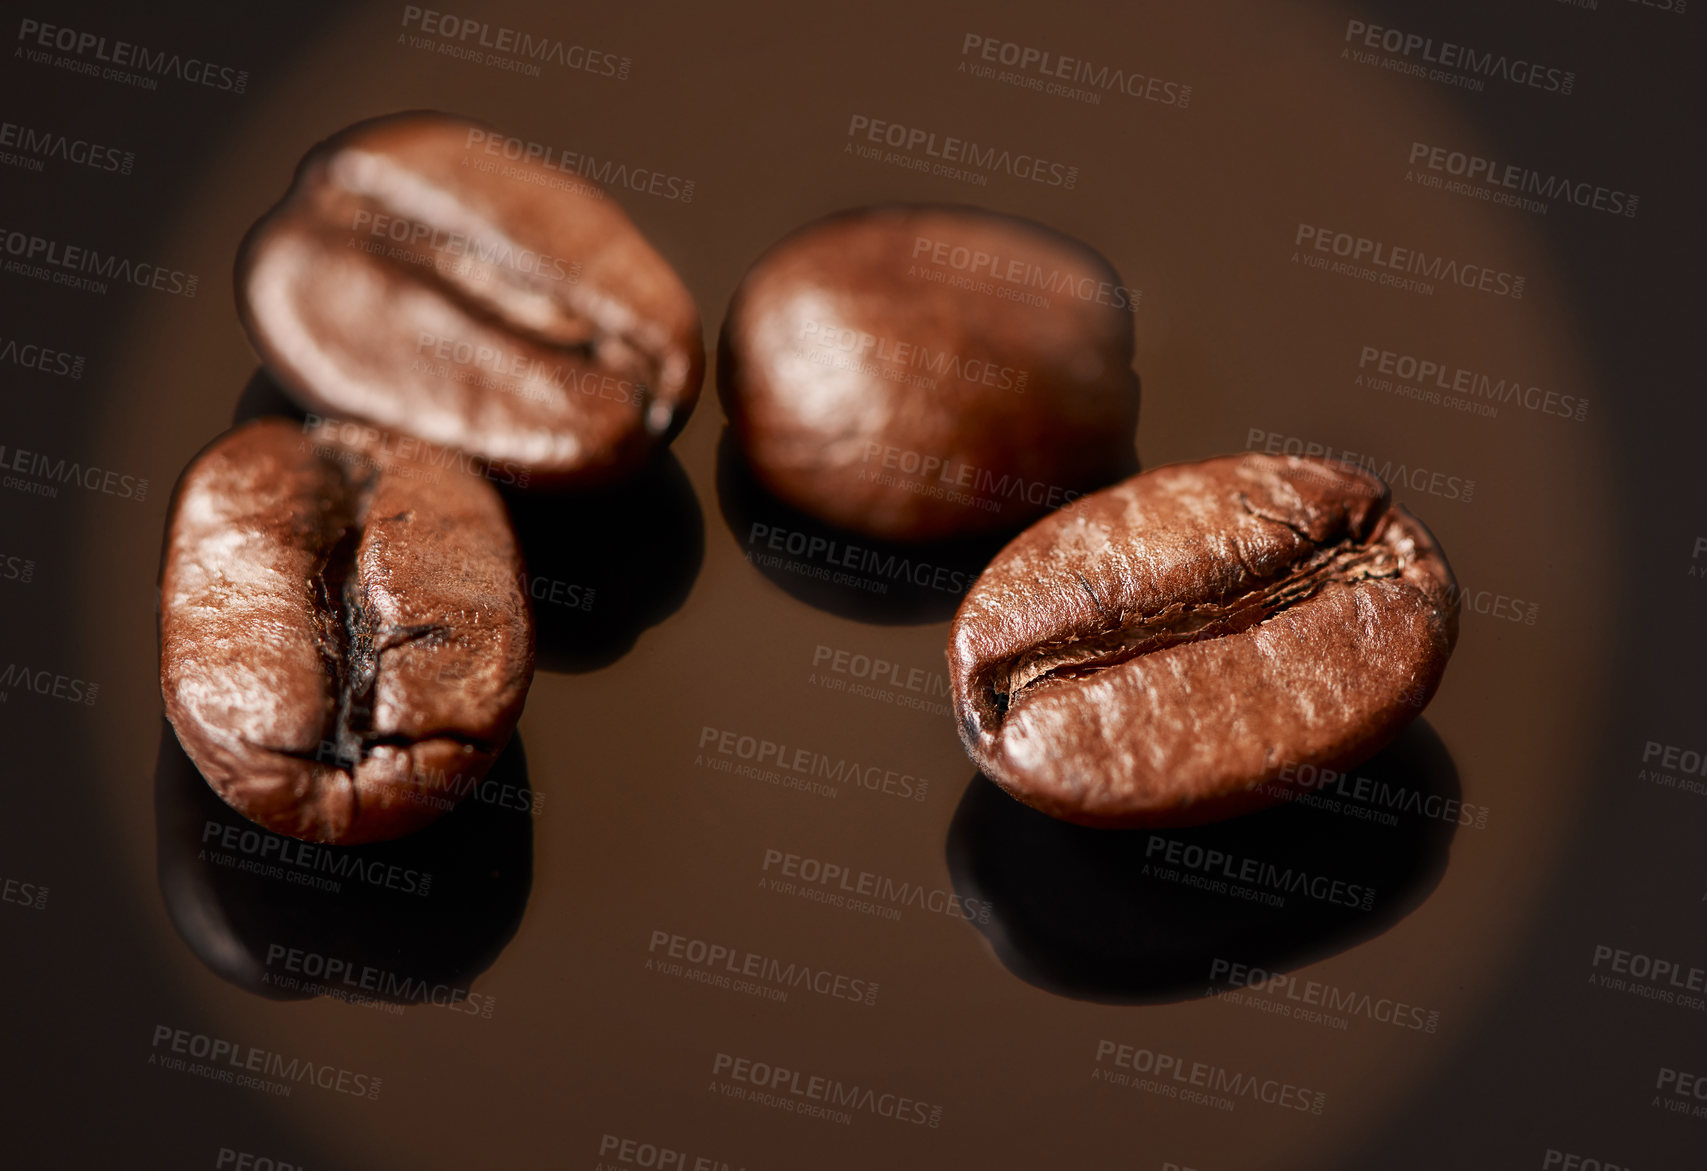 Buy stock photo Studio shot of coffee beans against a brown background